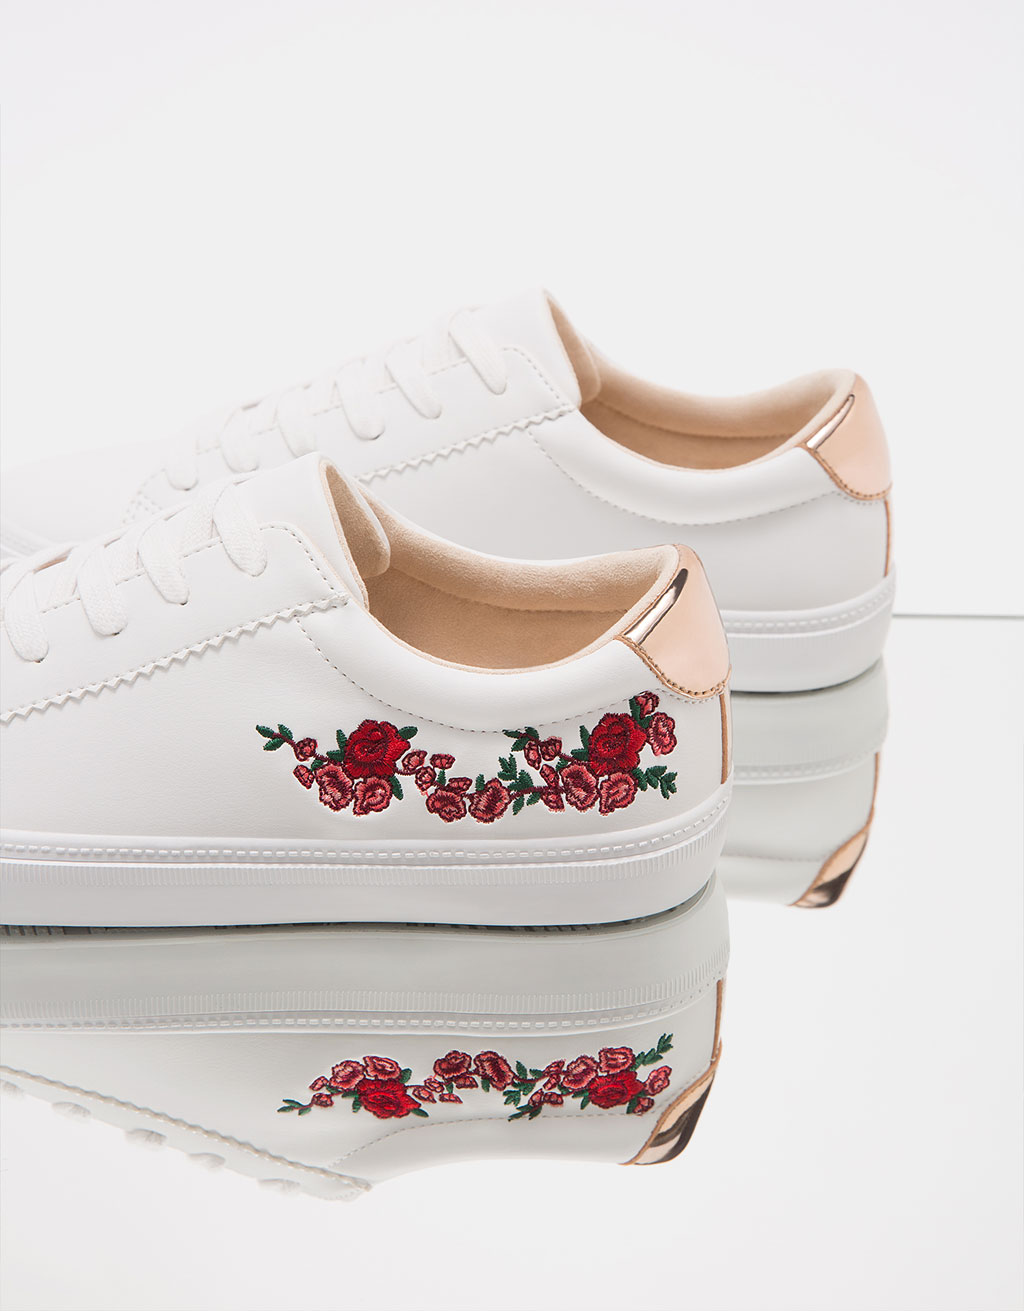 Sneakers with floral embroidery and metallic trim